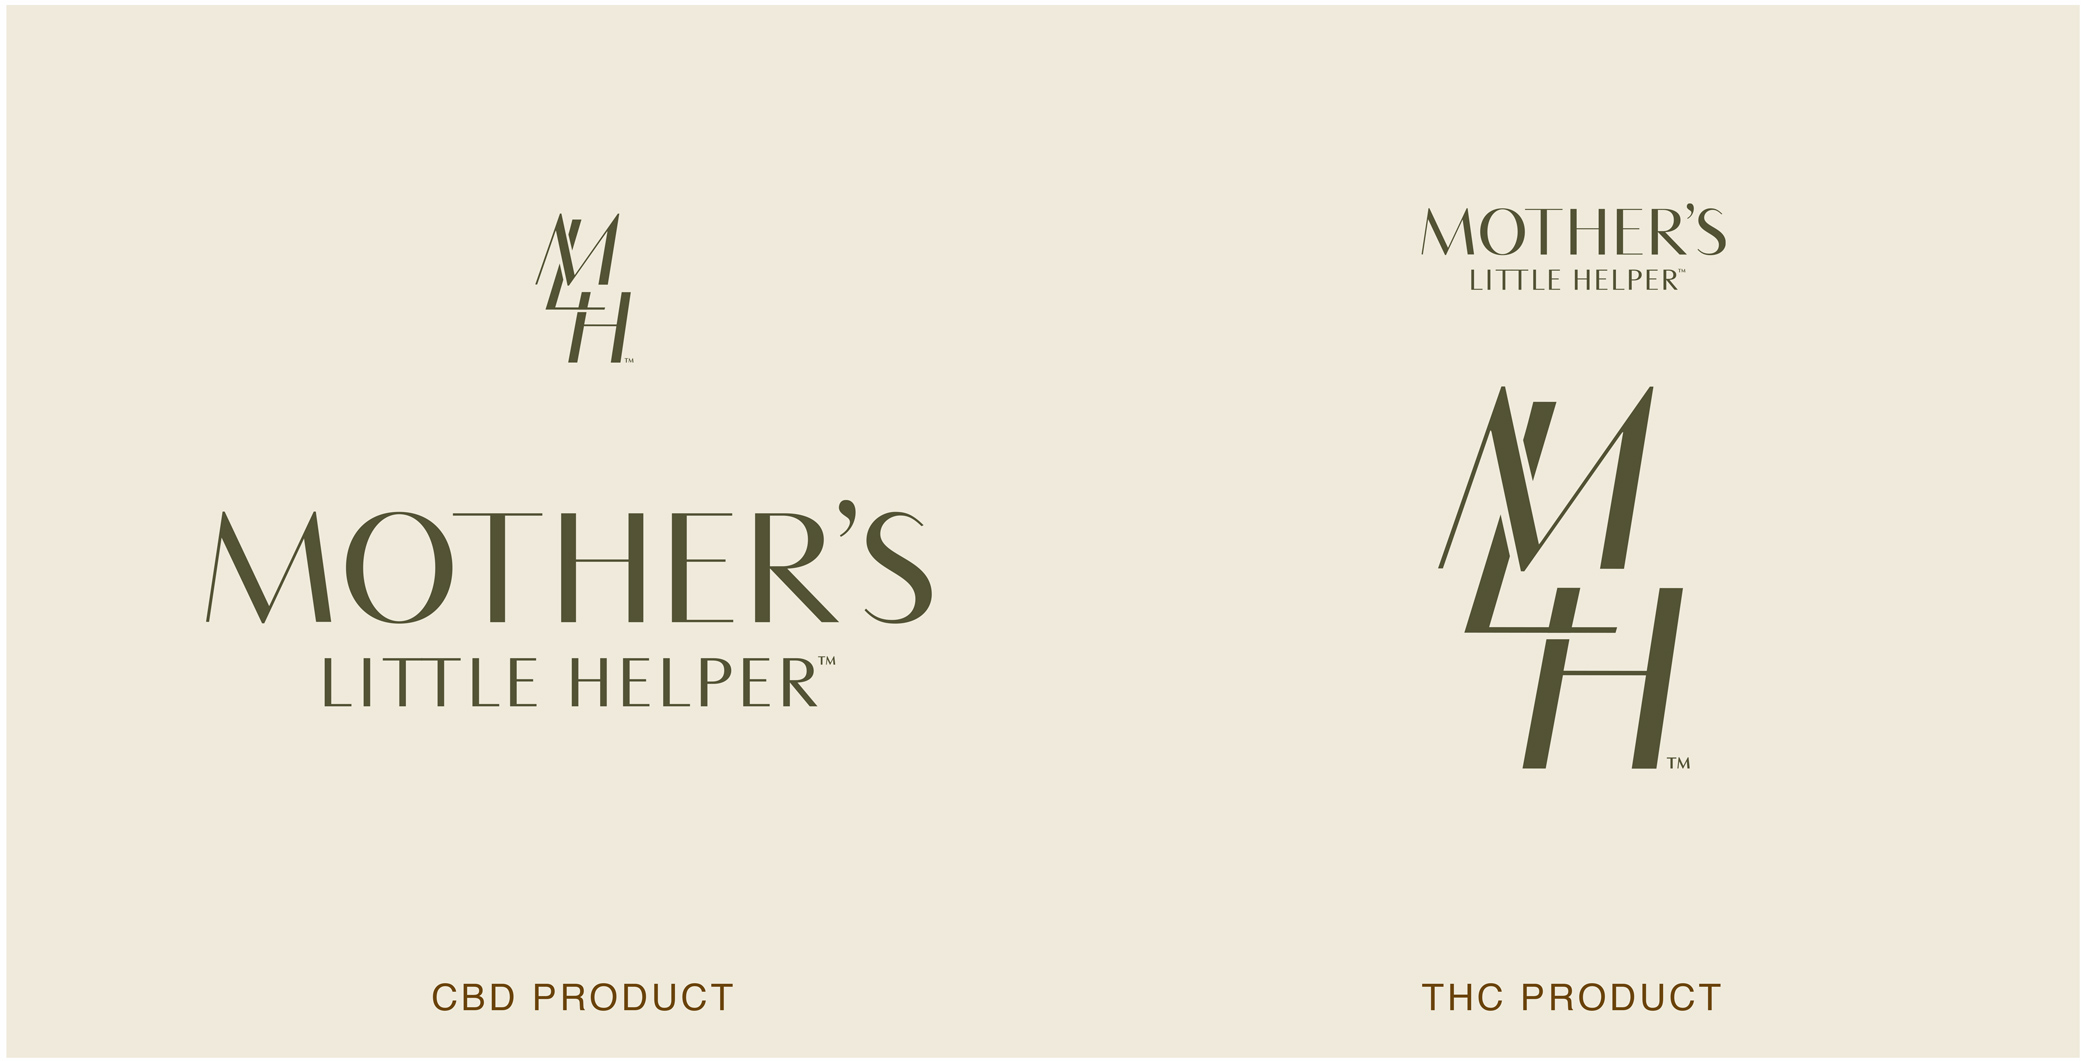 Mother's Little Helper logo design for CBD capsules and THC product line with monogram symbol and logo typography.